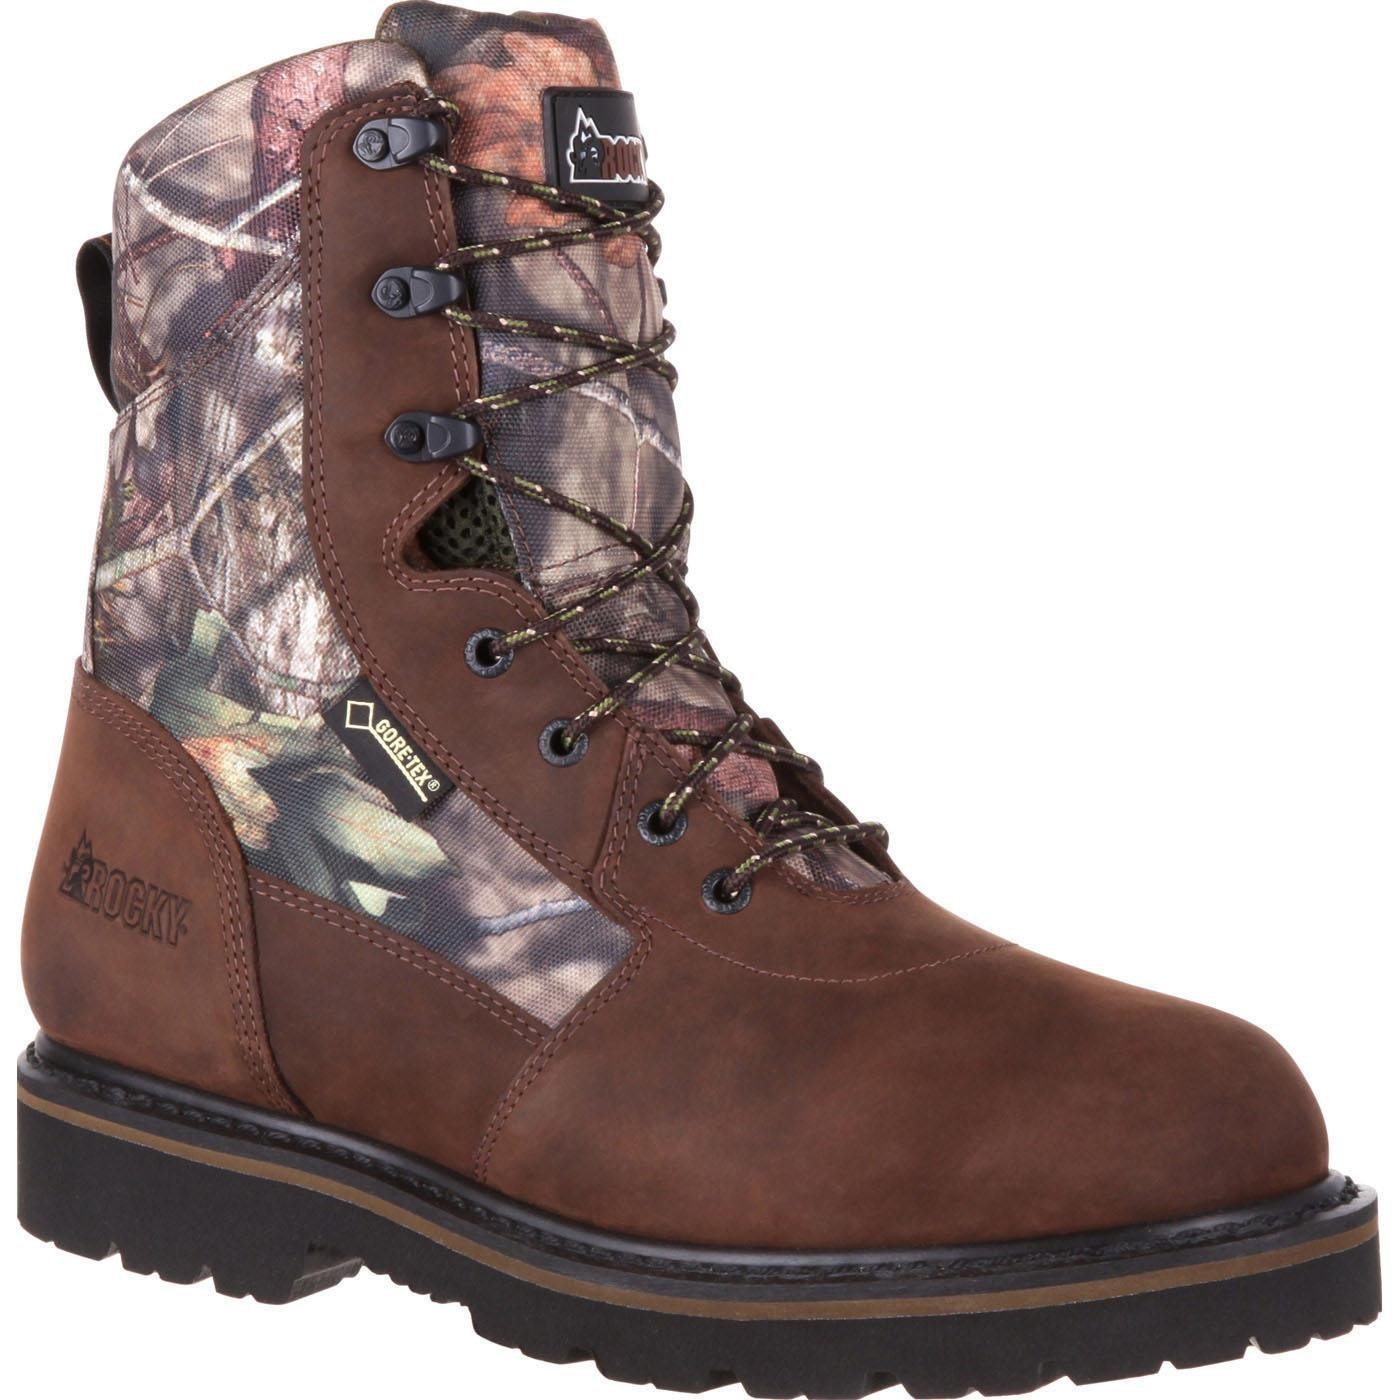 ROCKY Men's RKS0311 Mid Calf Boot, Brown and Mossy Oak Country Camoflauge, 8 M US by ROCKY